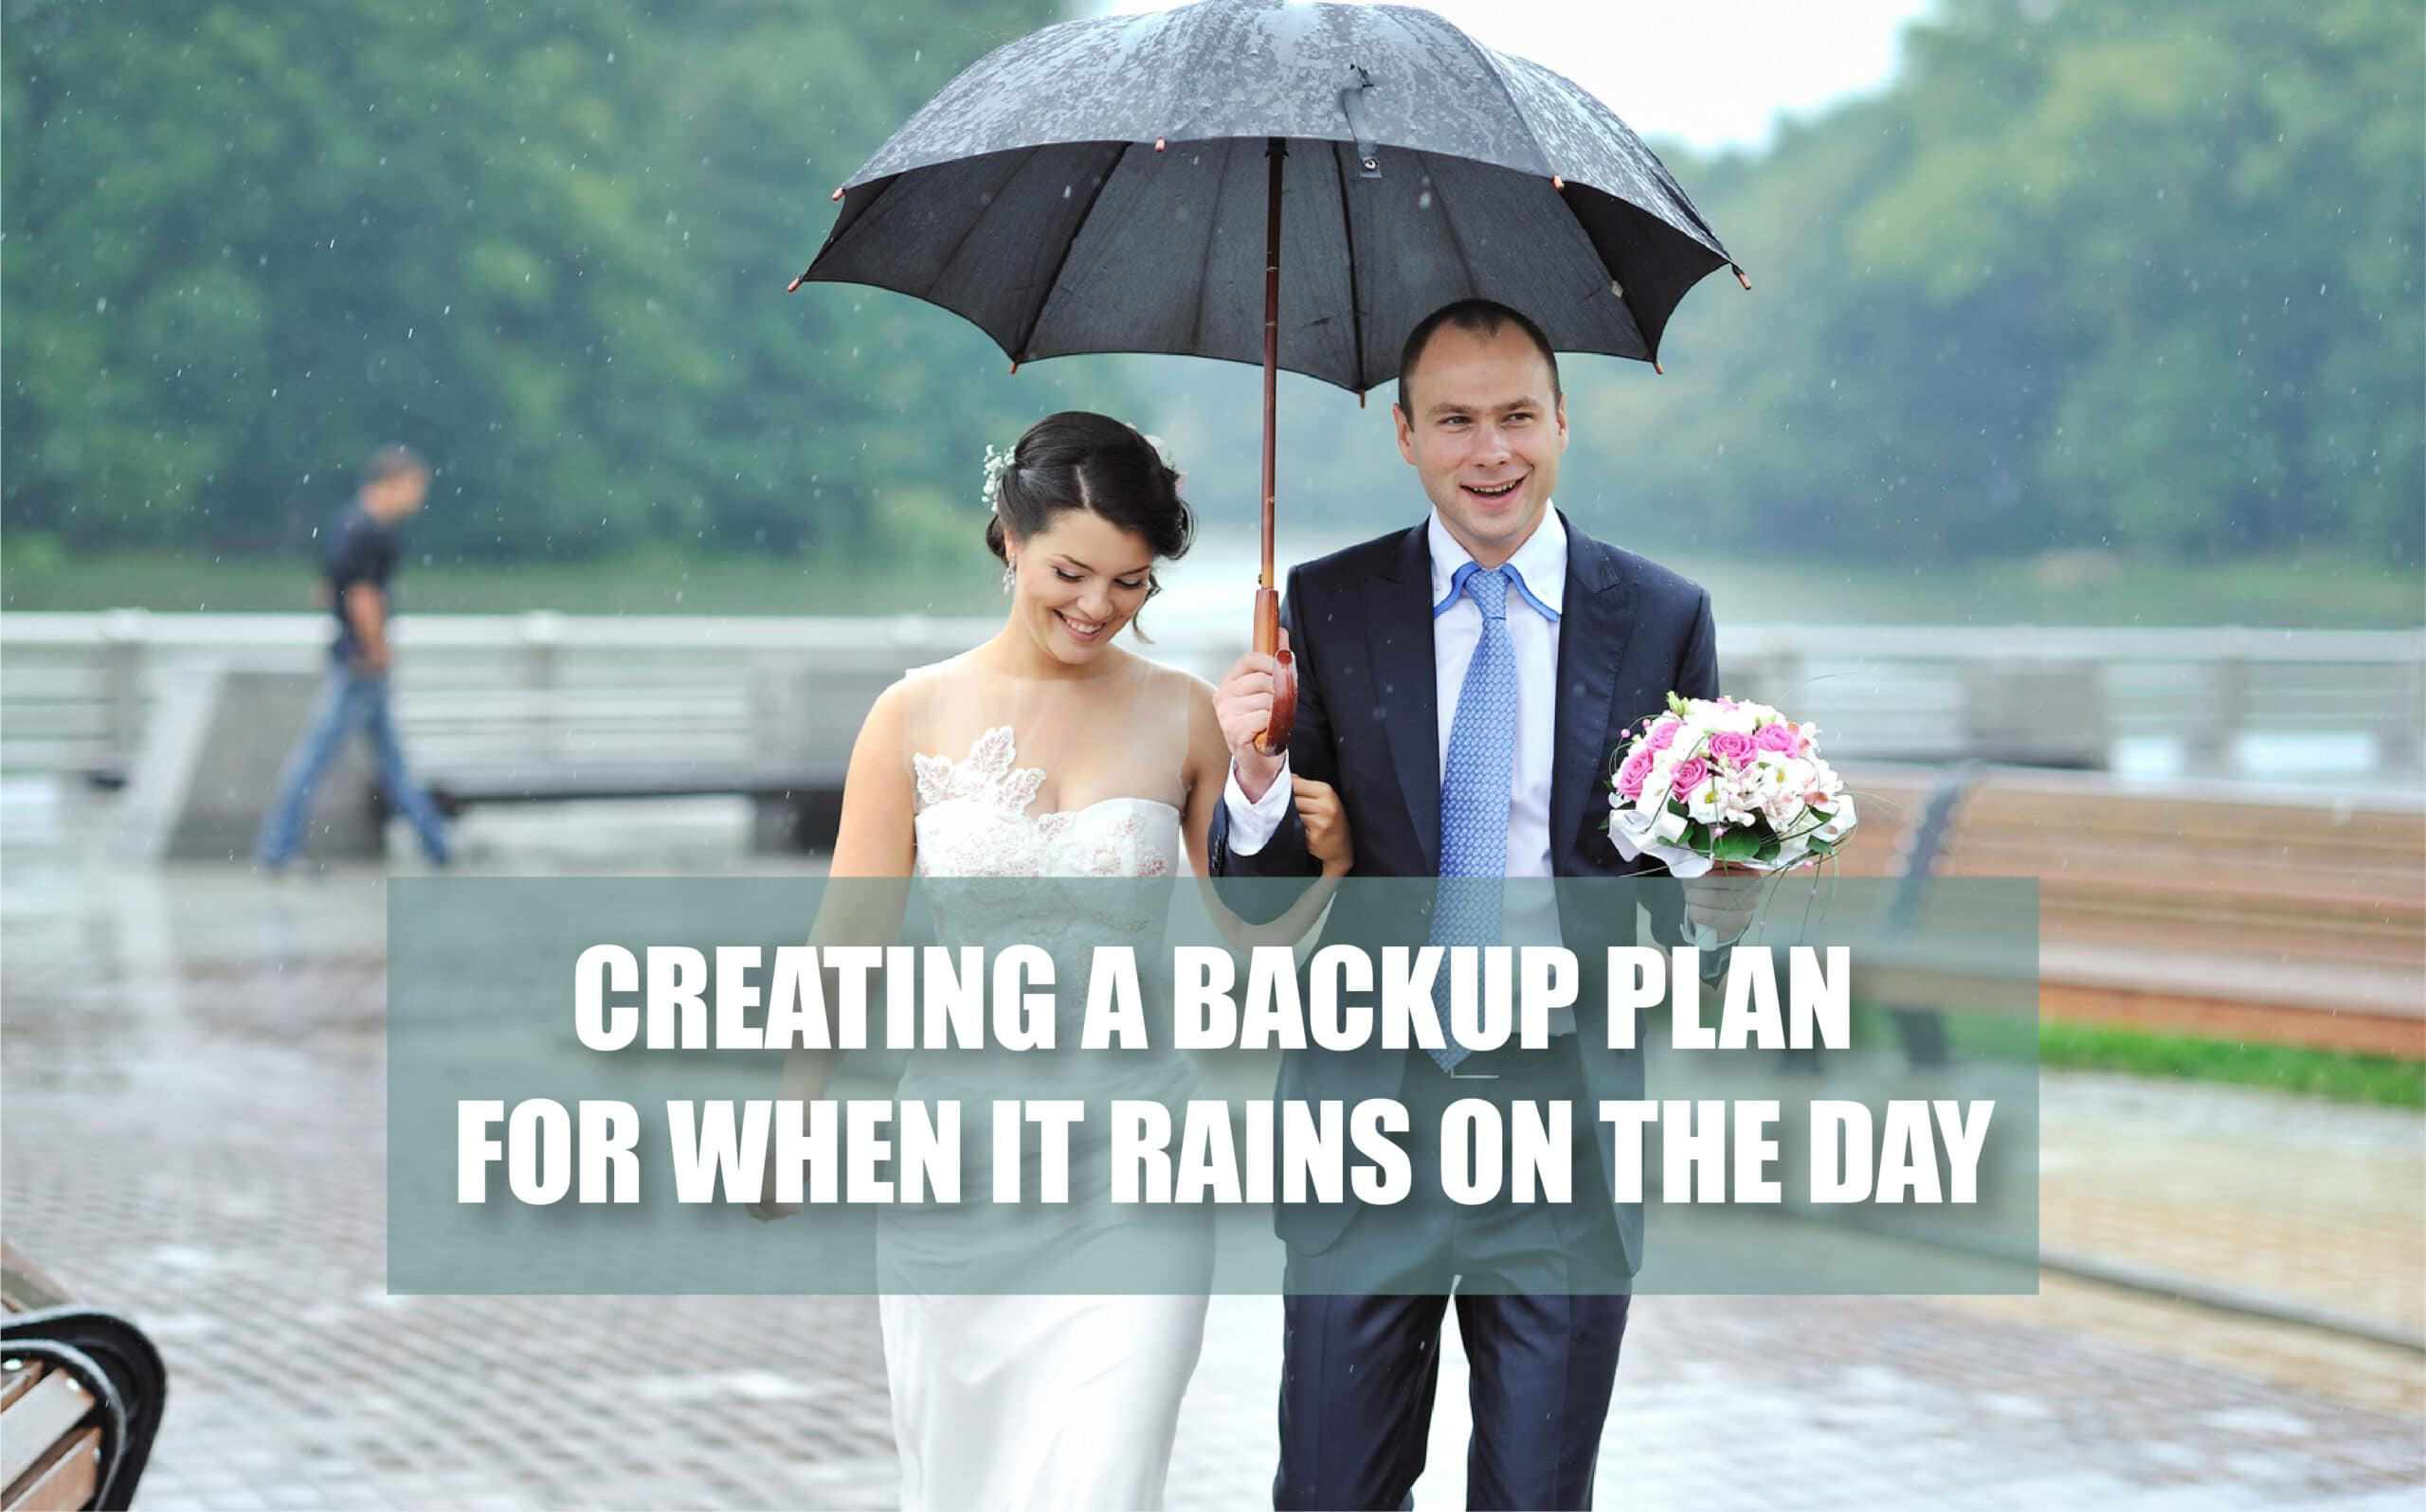 Creating a Backup Plan for When It Rains on the Day